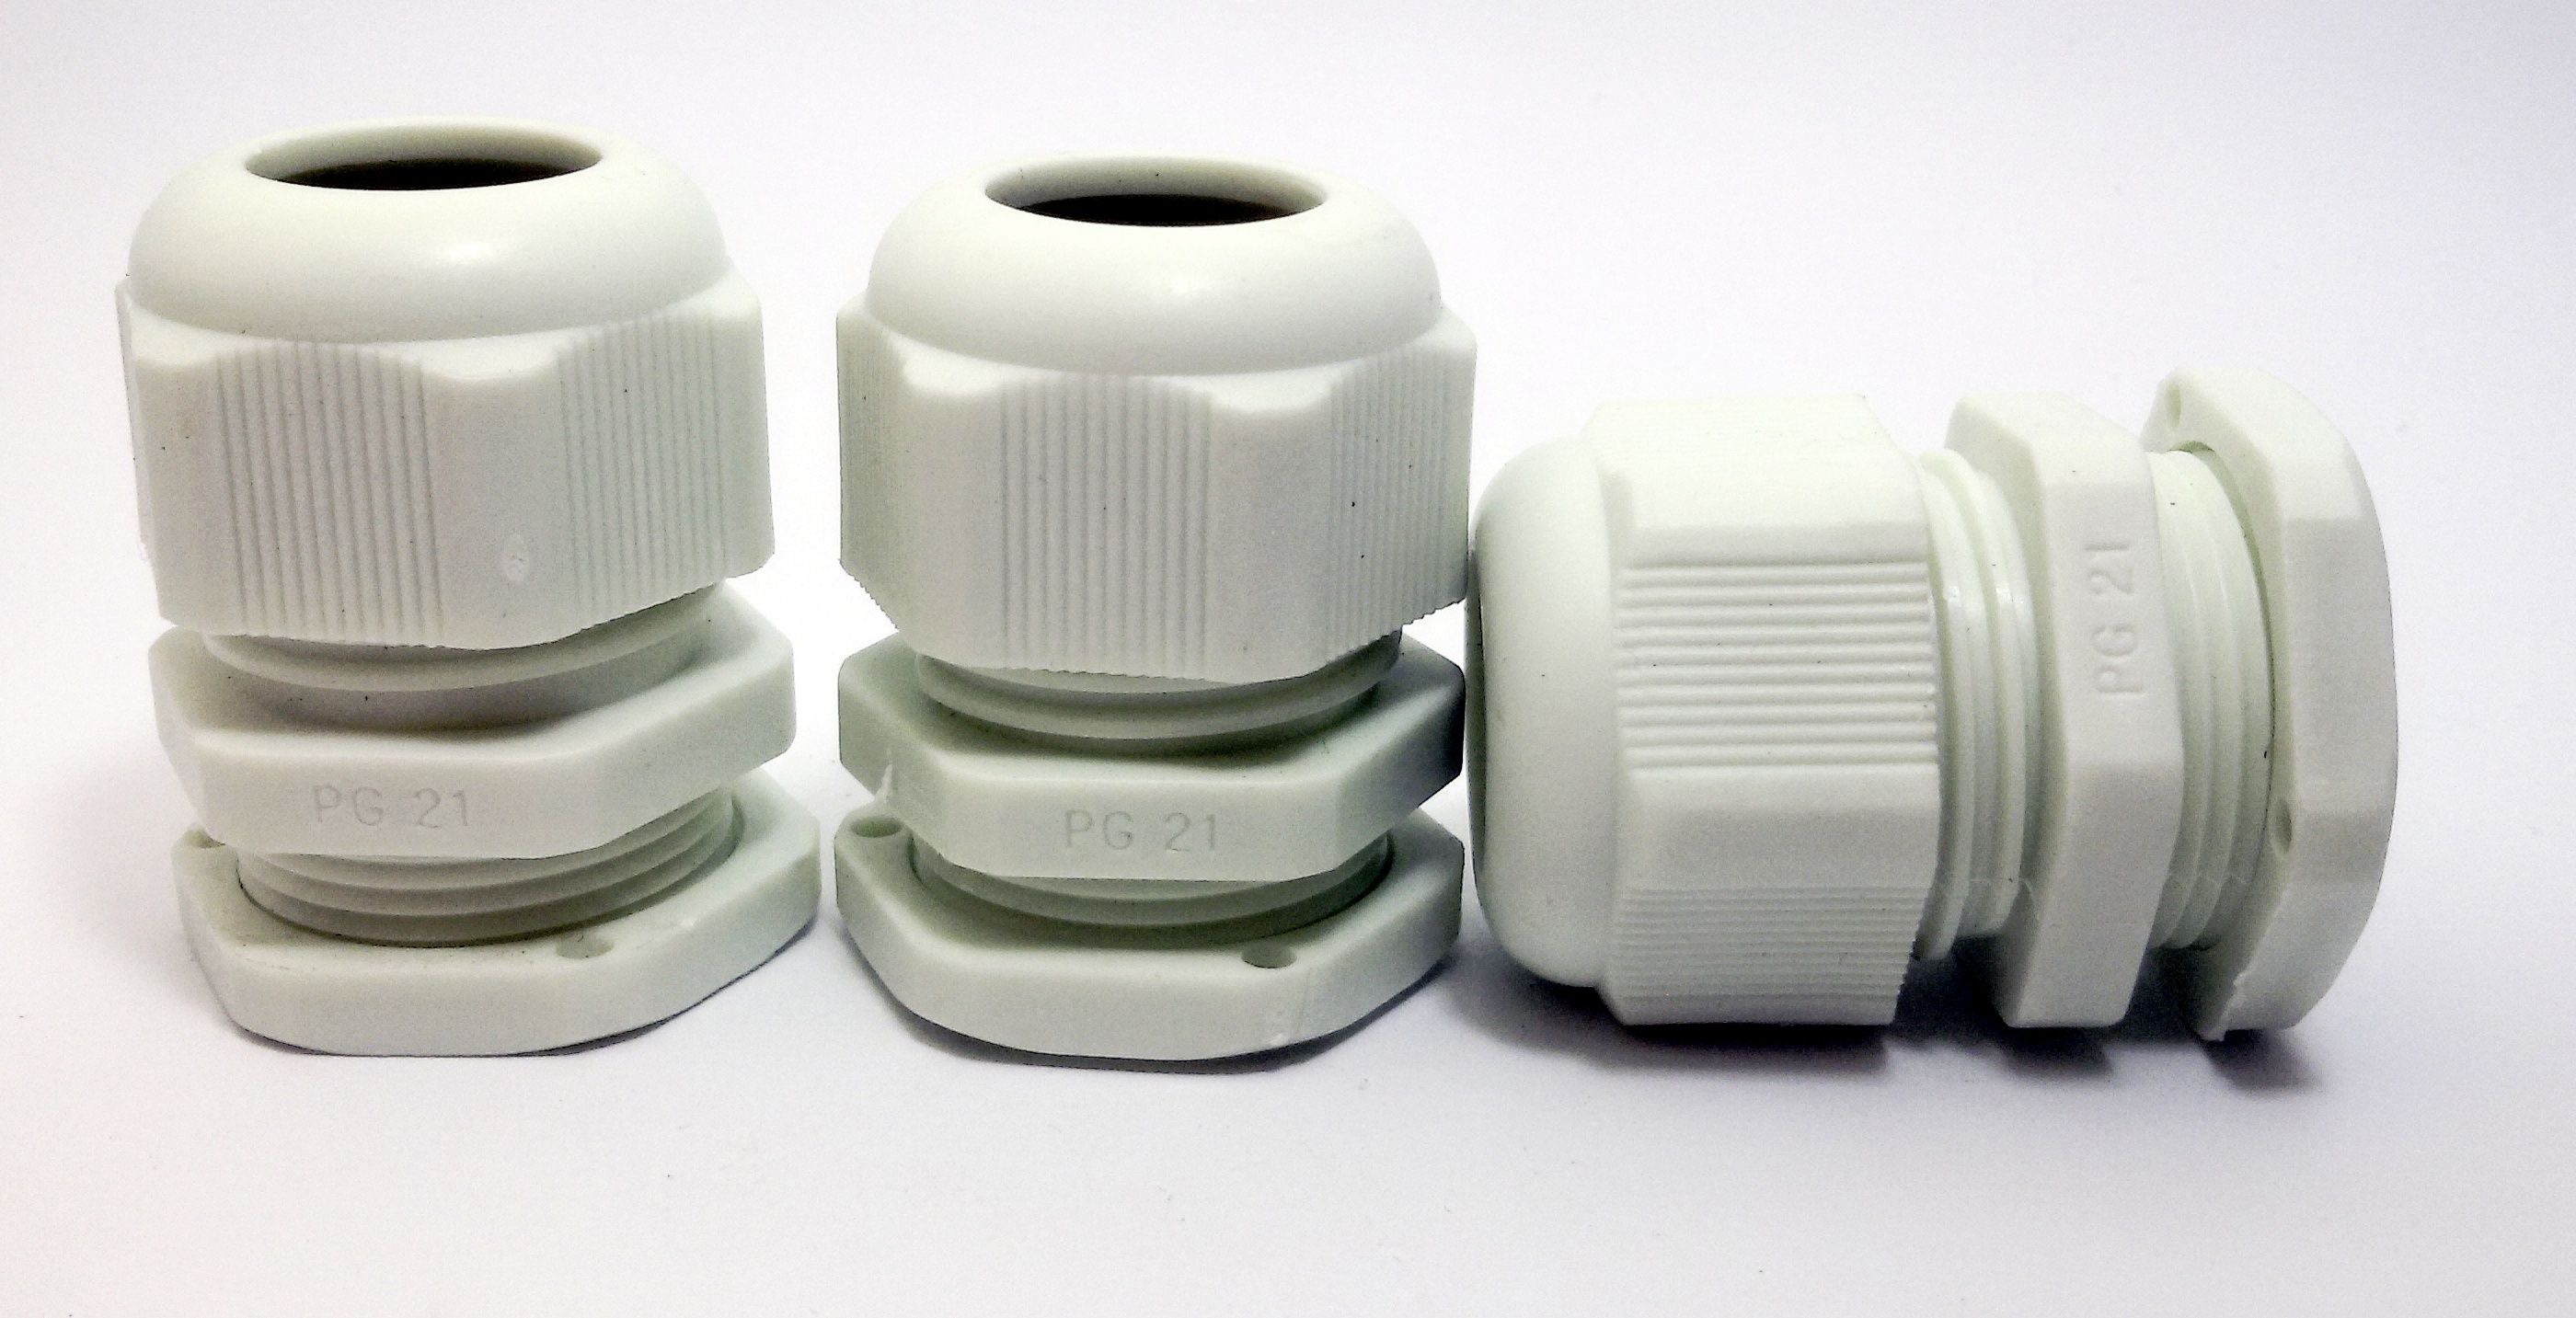 LOBO ELECTRIC CABLE GLAND PG21 13 -18 mm. สีขาว